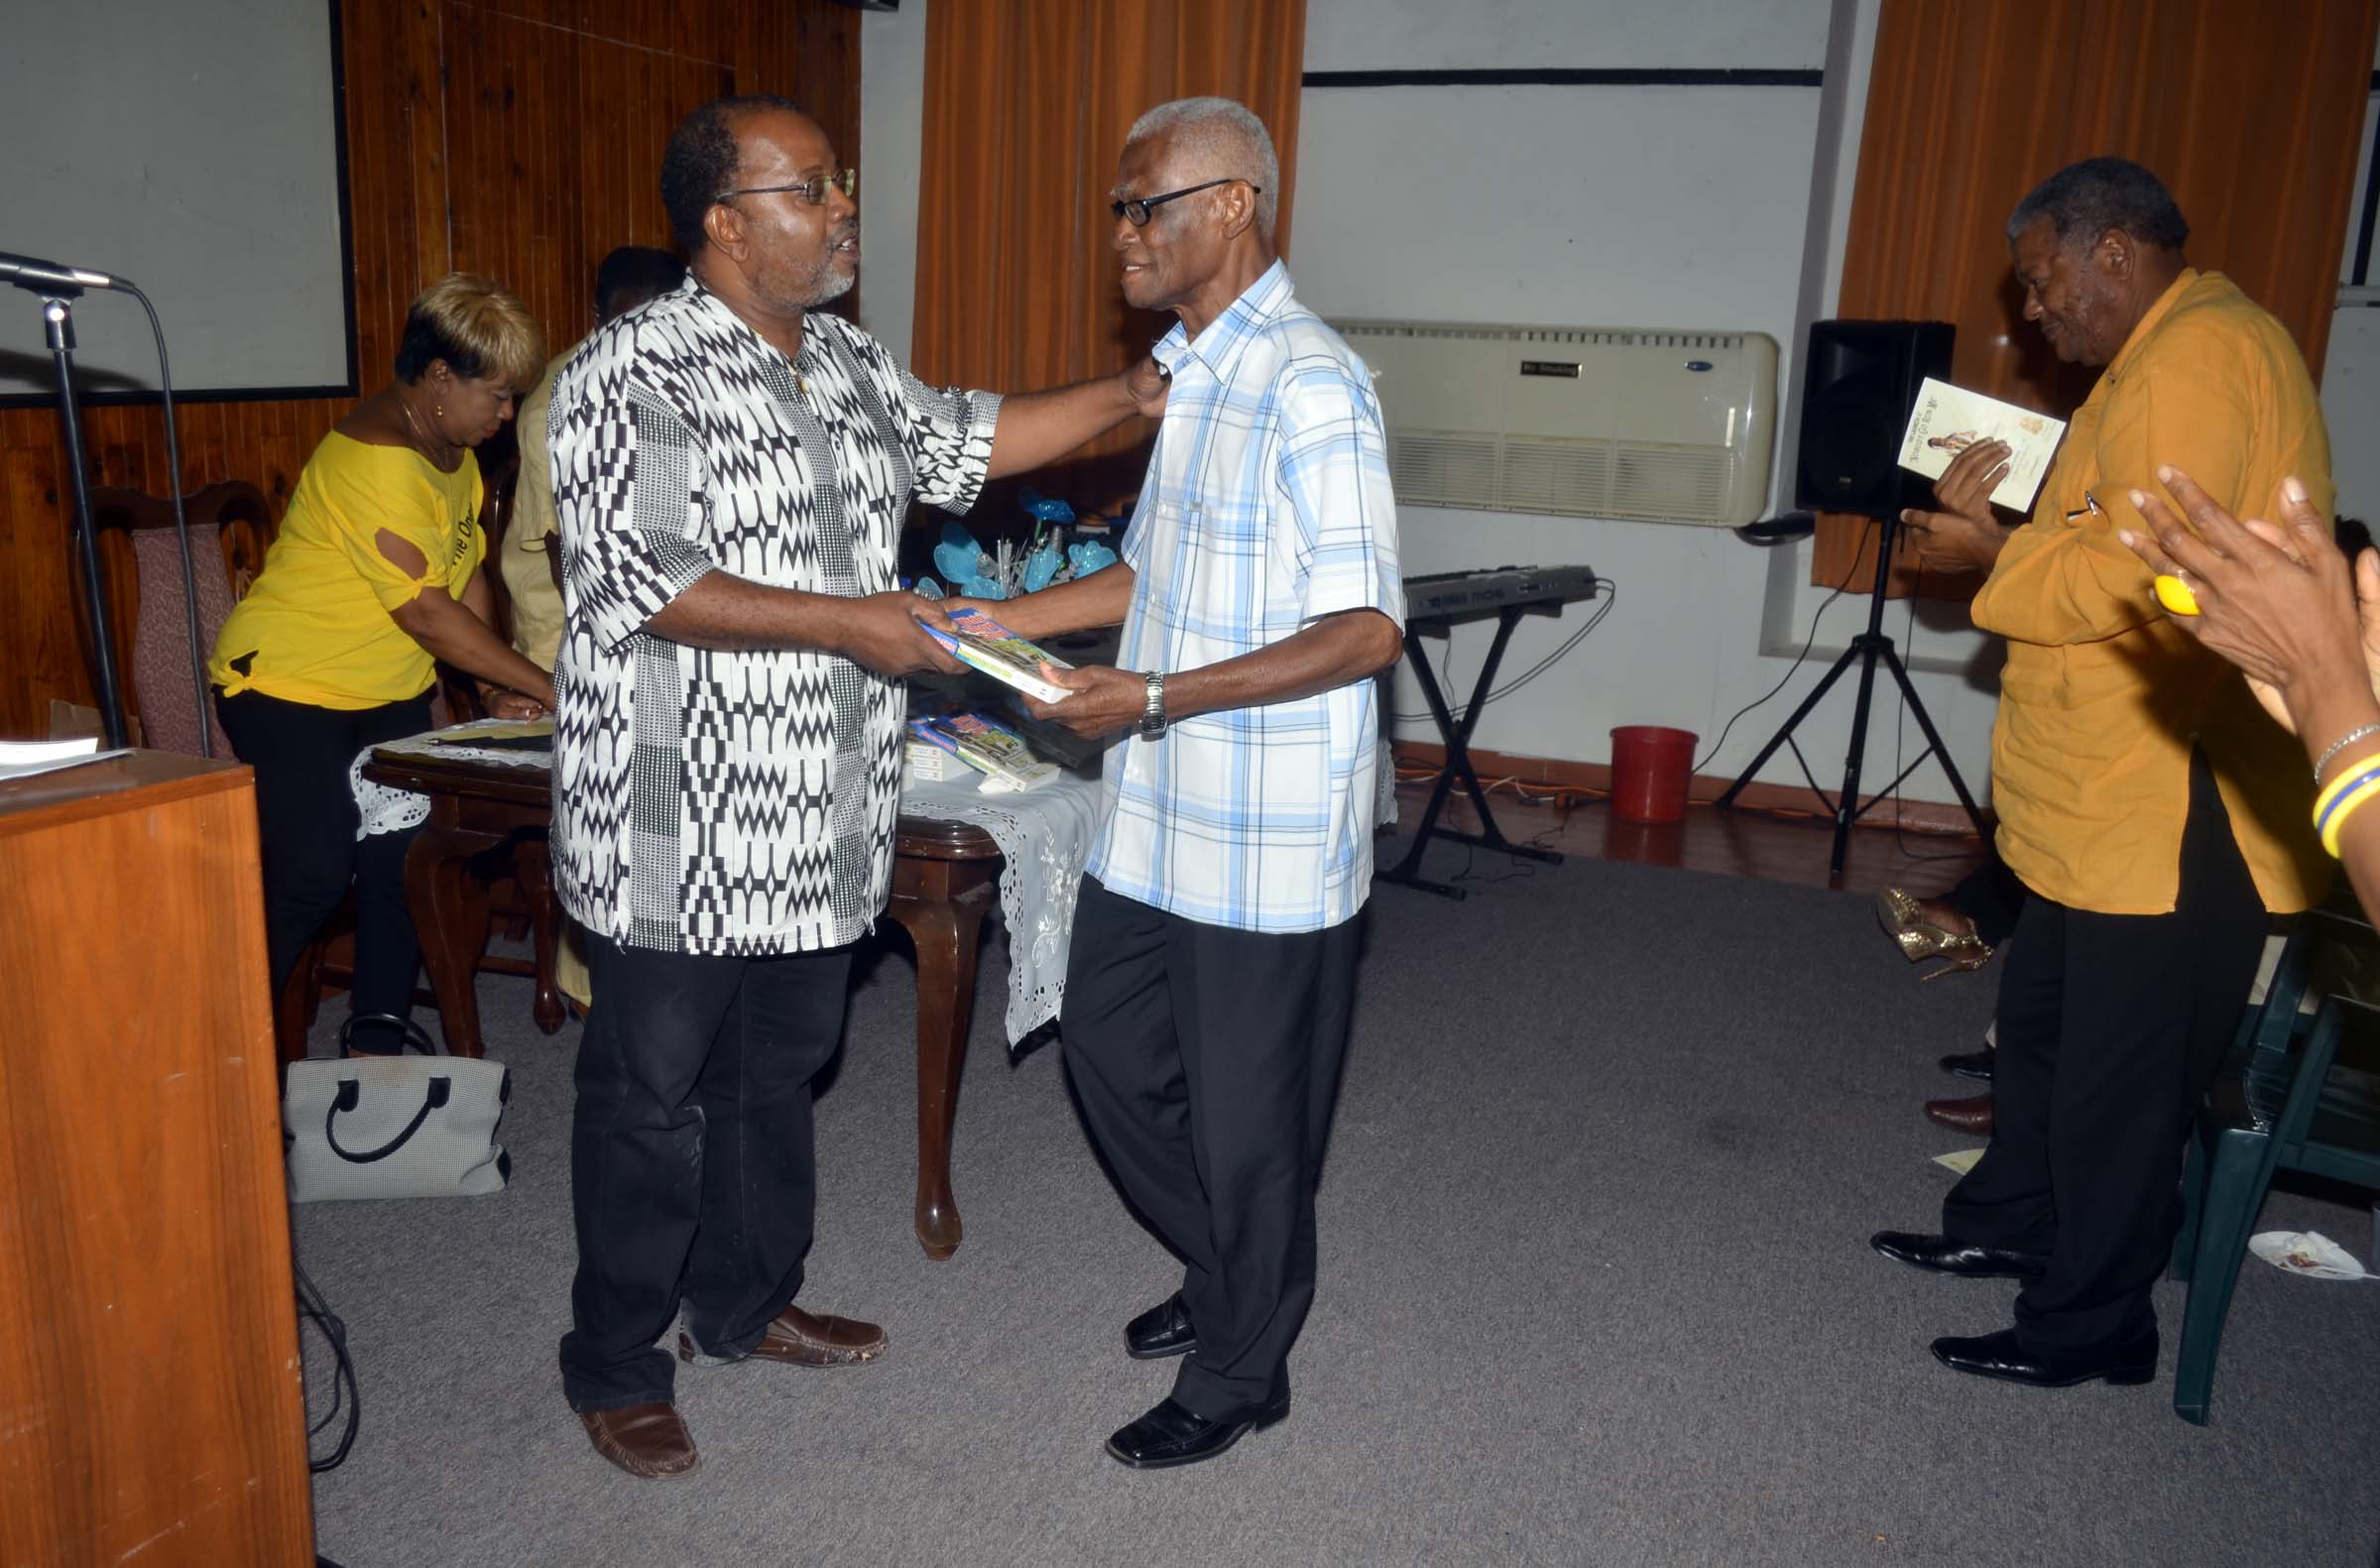 Dobrene Omarde presents copy of book to Marcus Christopher